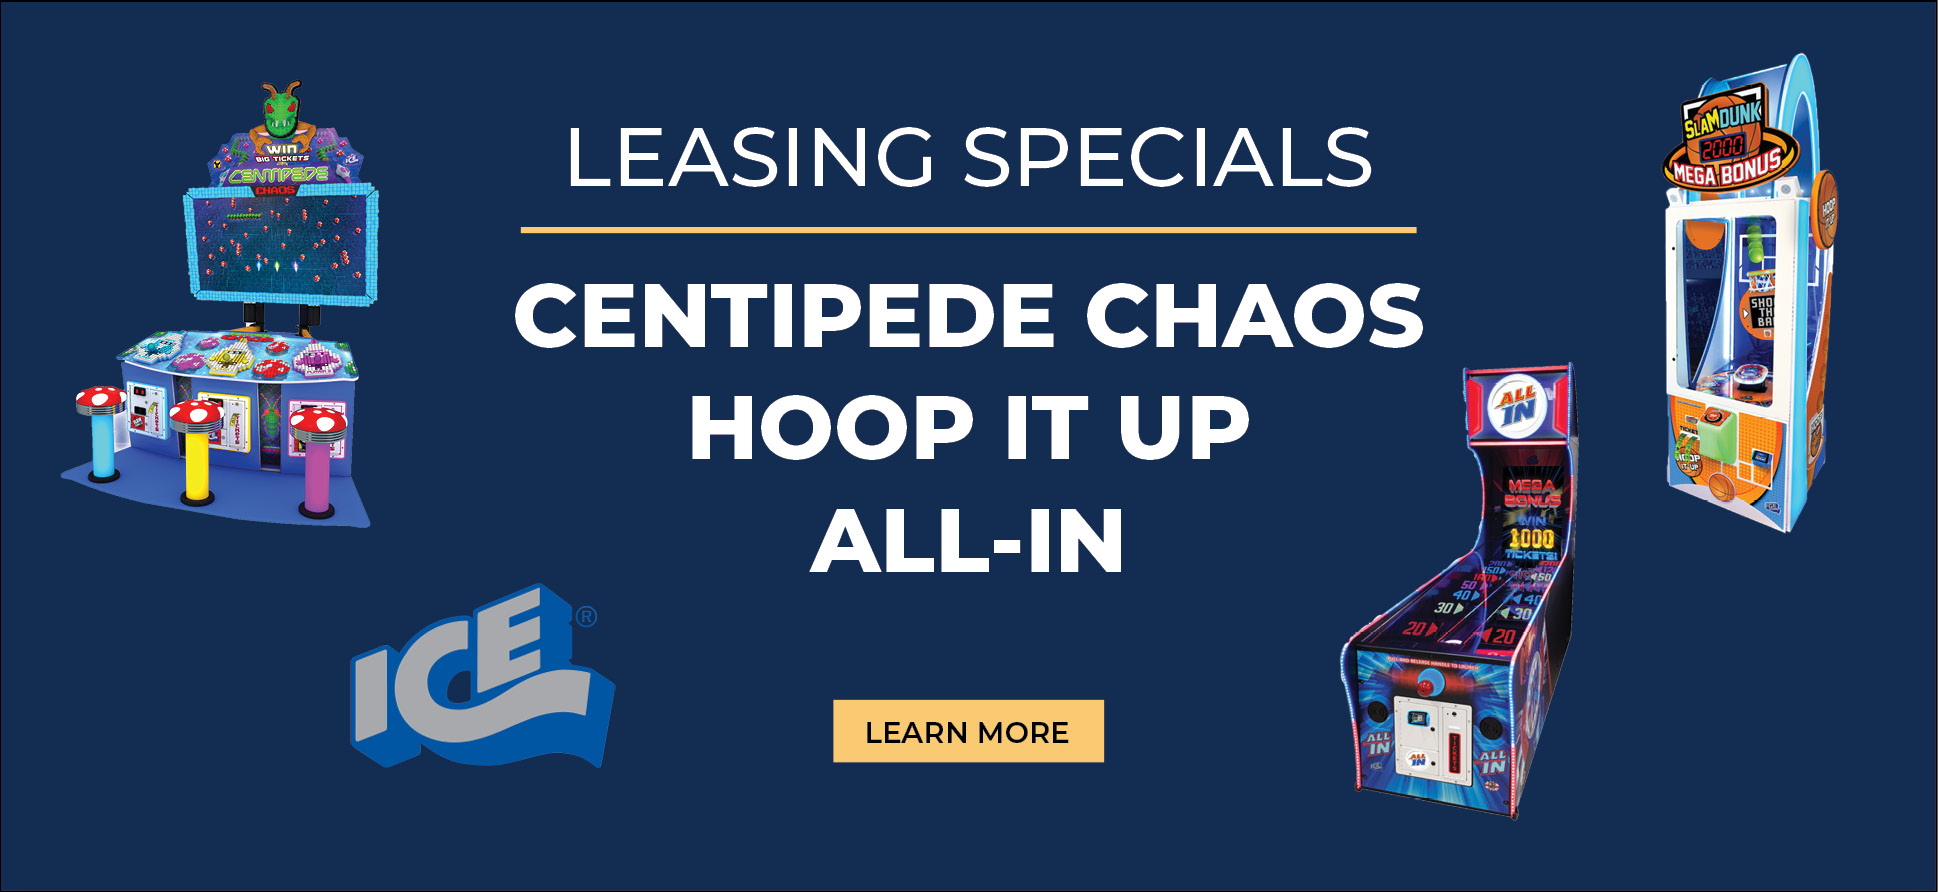 Leasing Specials on ICE Games - May 2021